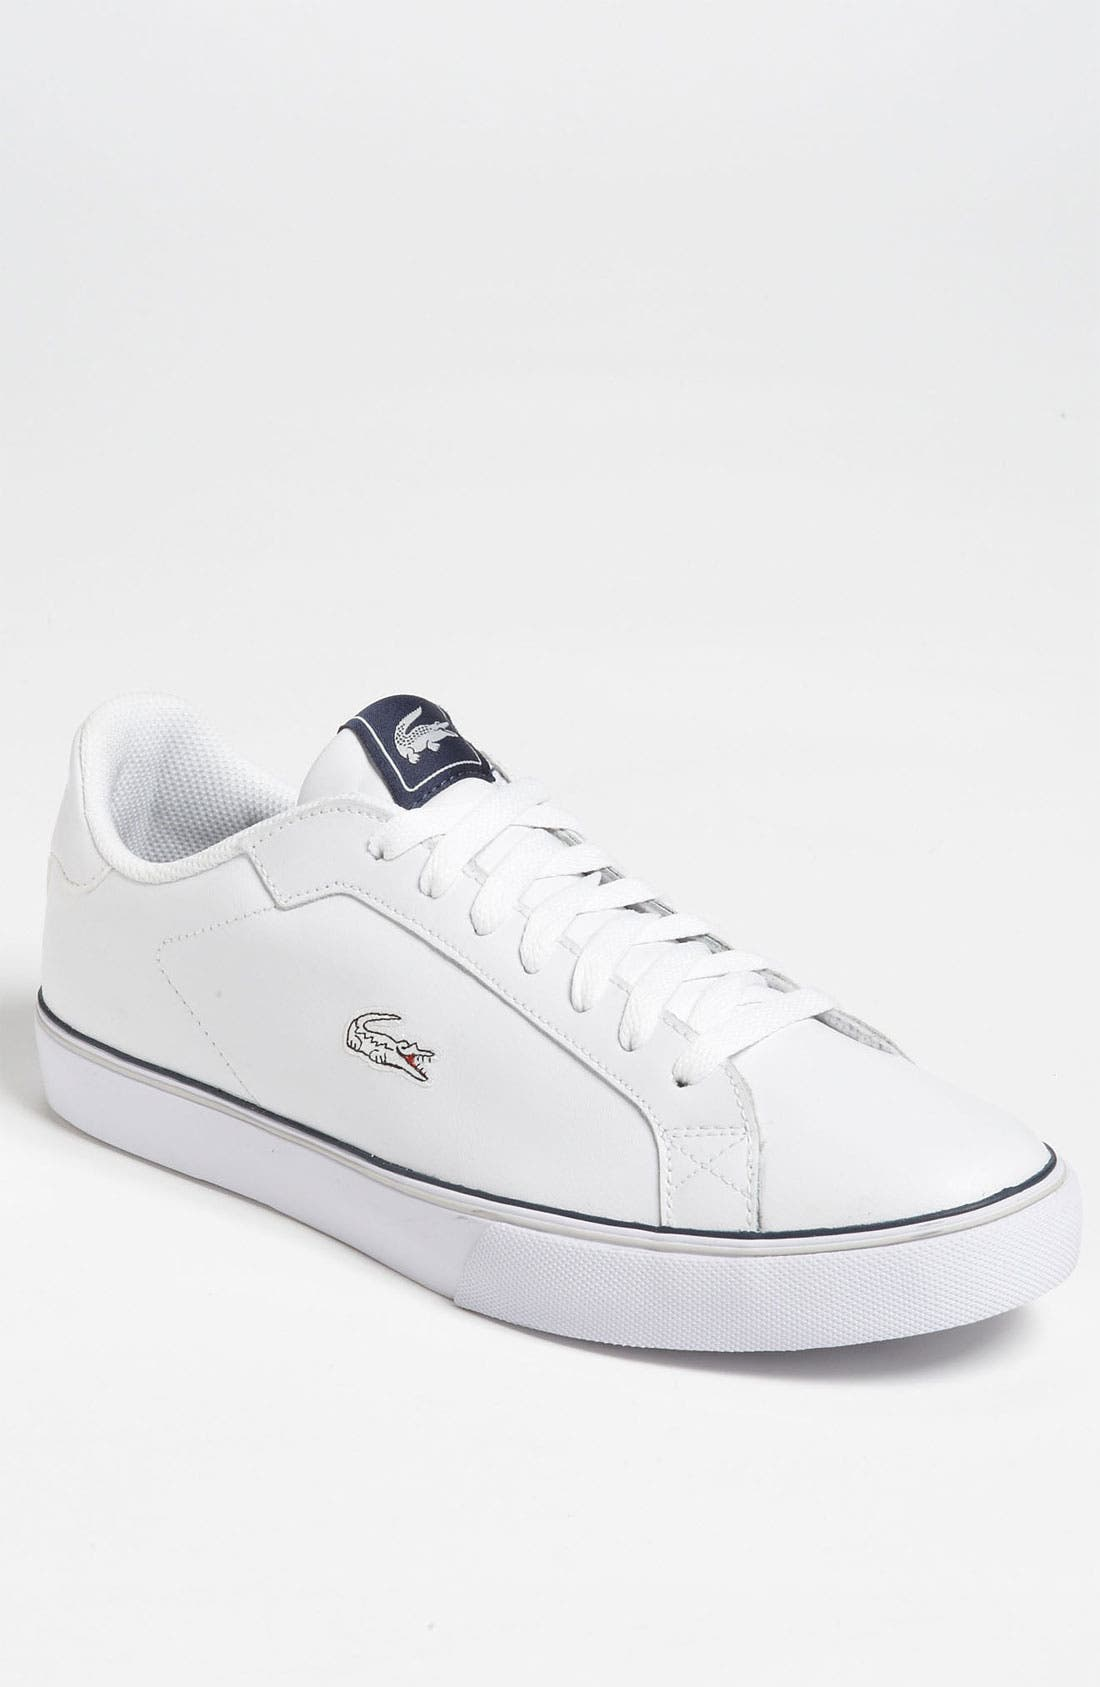 Alternate Image 1 Selected - Lacoste 'Marlinglow' Sneaker (Men)